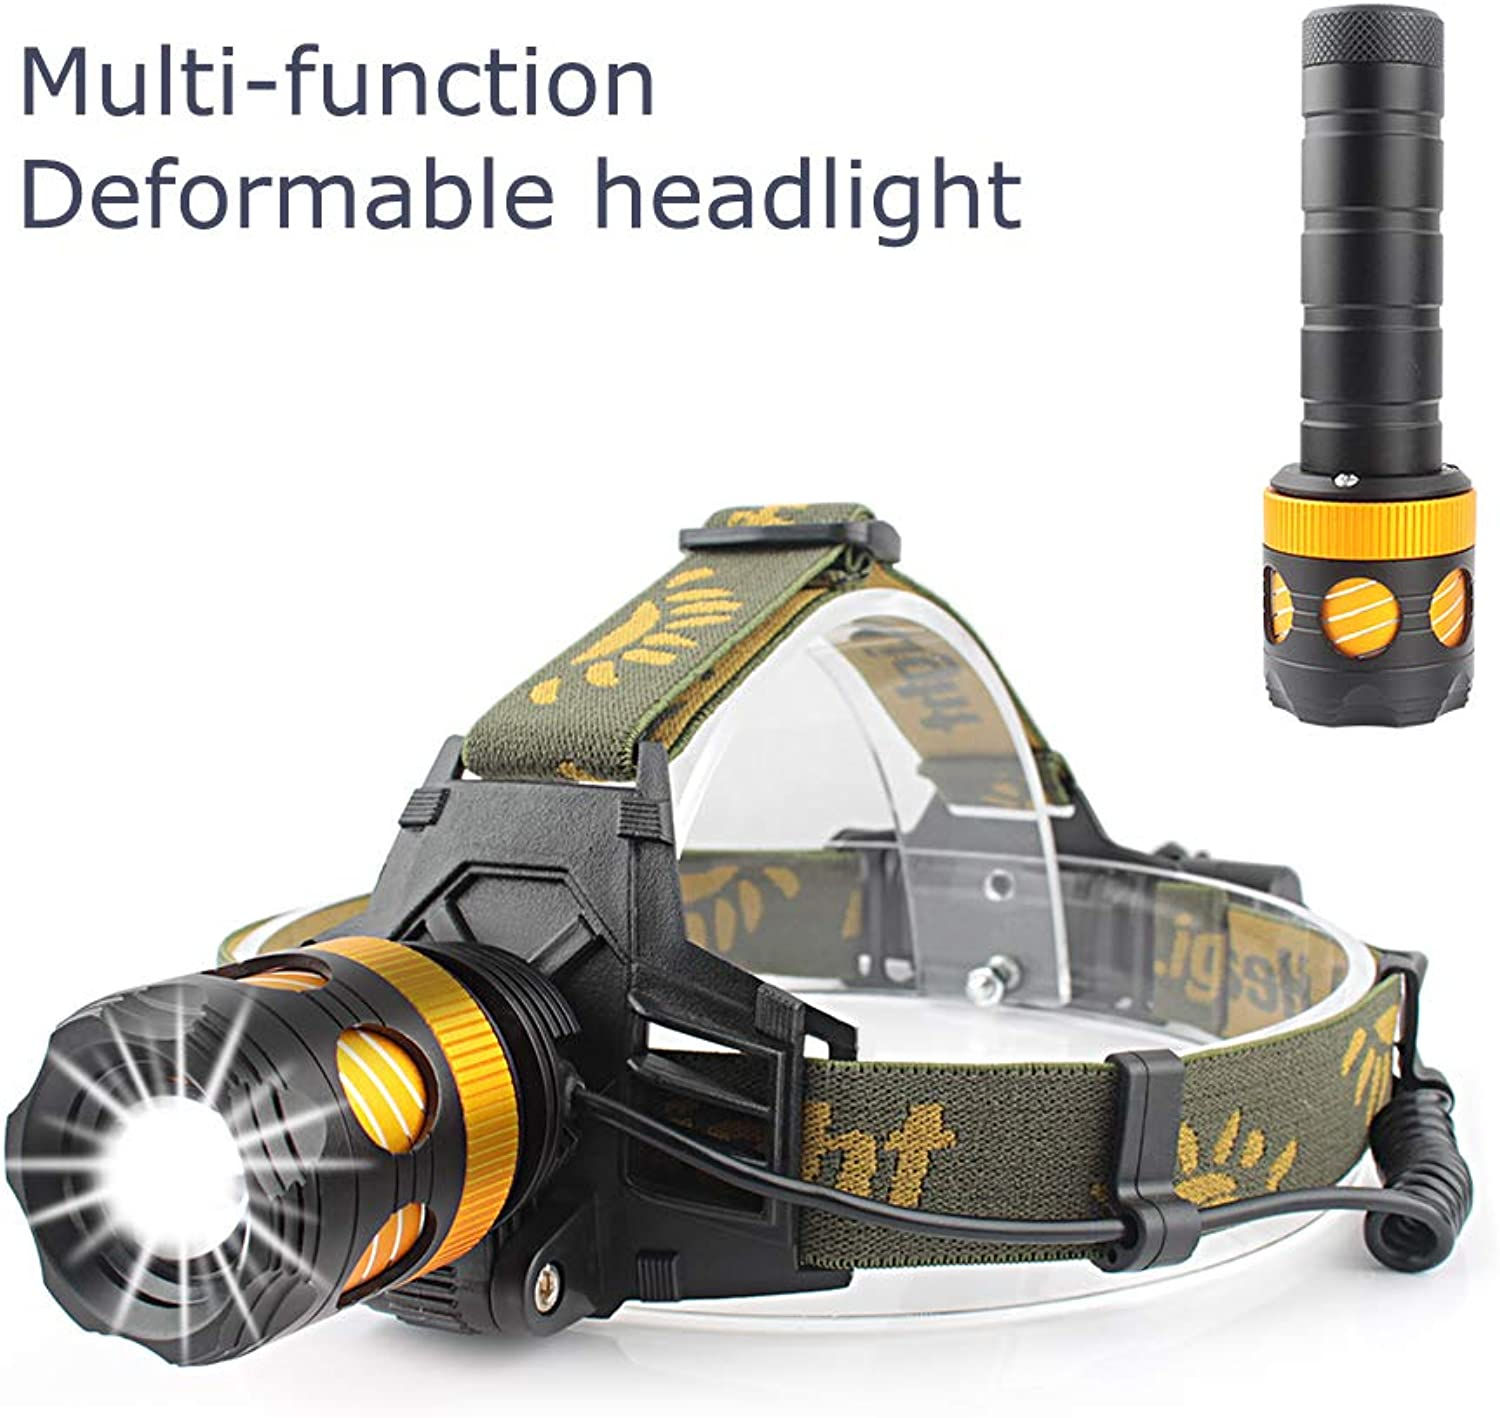 CiSiRUN Headlamp, LED Work Headlight, USB Rechargeable Waterproof Flashlight Work Light,Head Lights Flashlight for Camping, Hiking, Outdoors with Charger and Rechargeable Battery